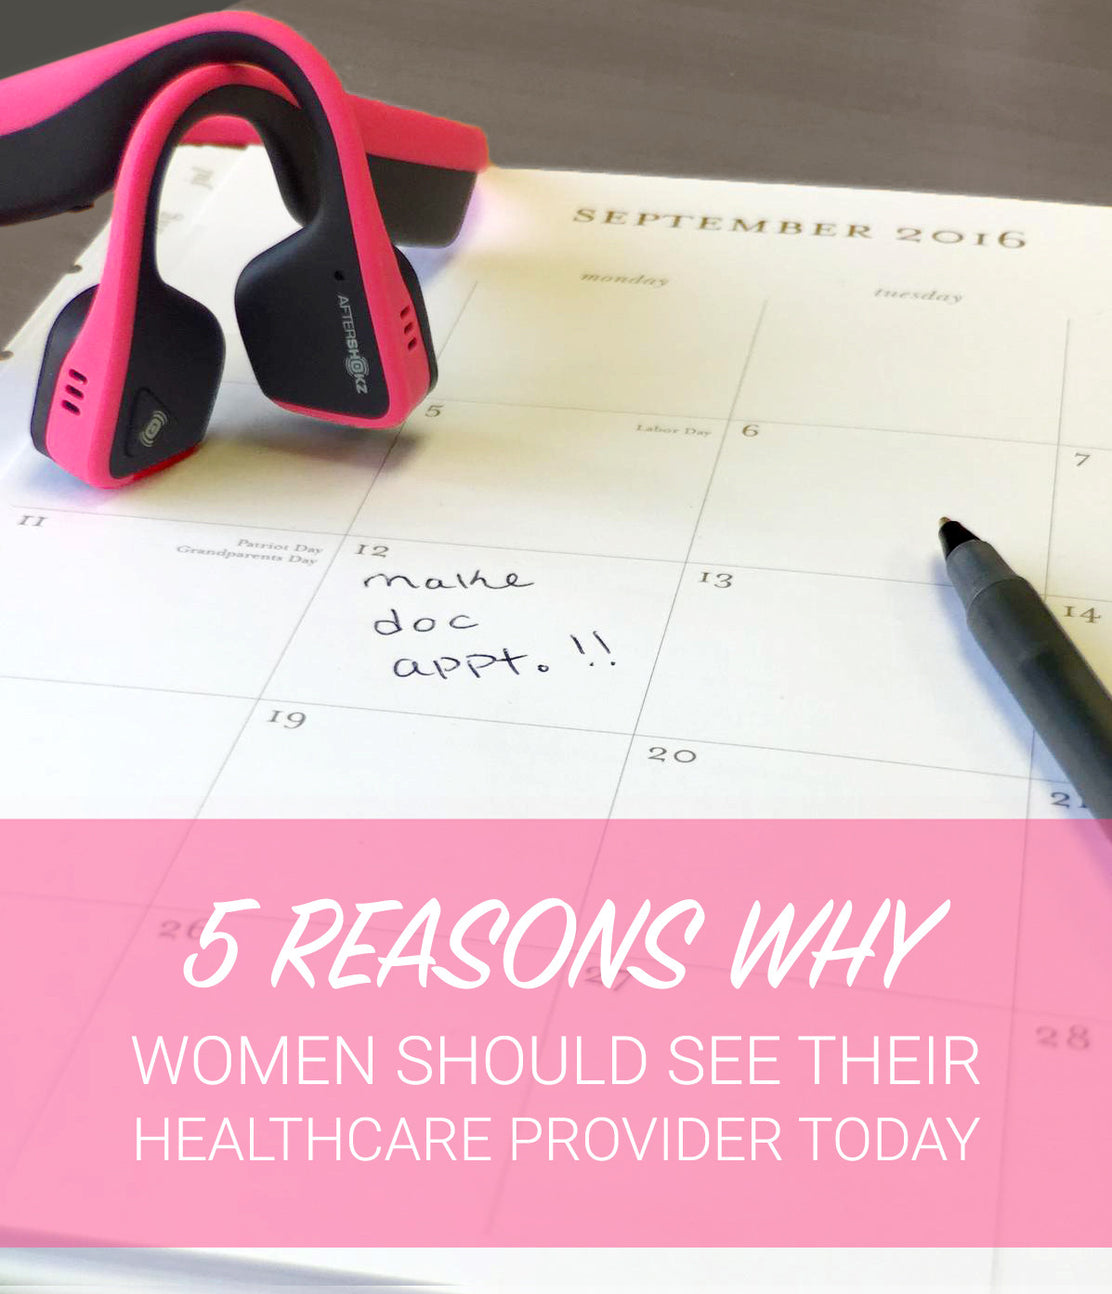 Five Reasons Why Women Should See Their Healthcare Provider Today